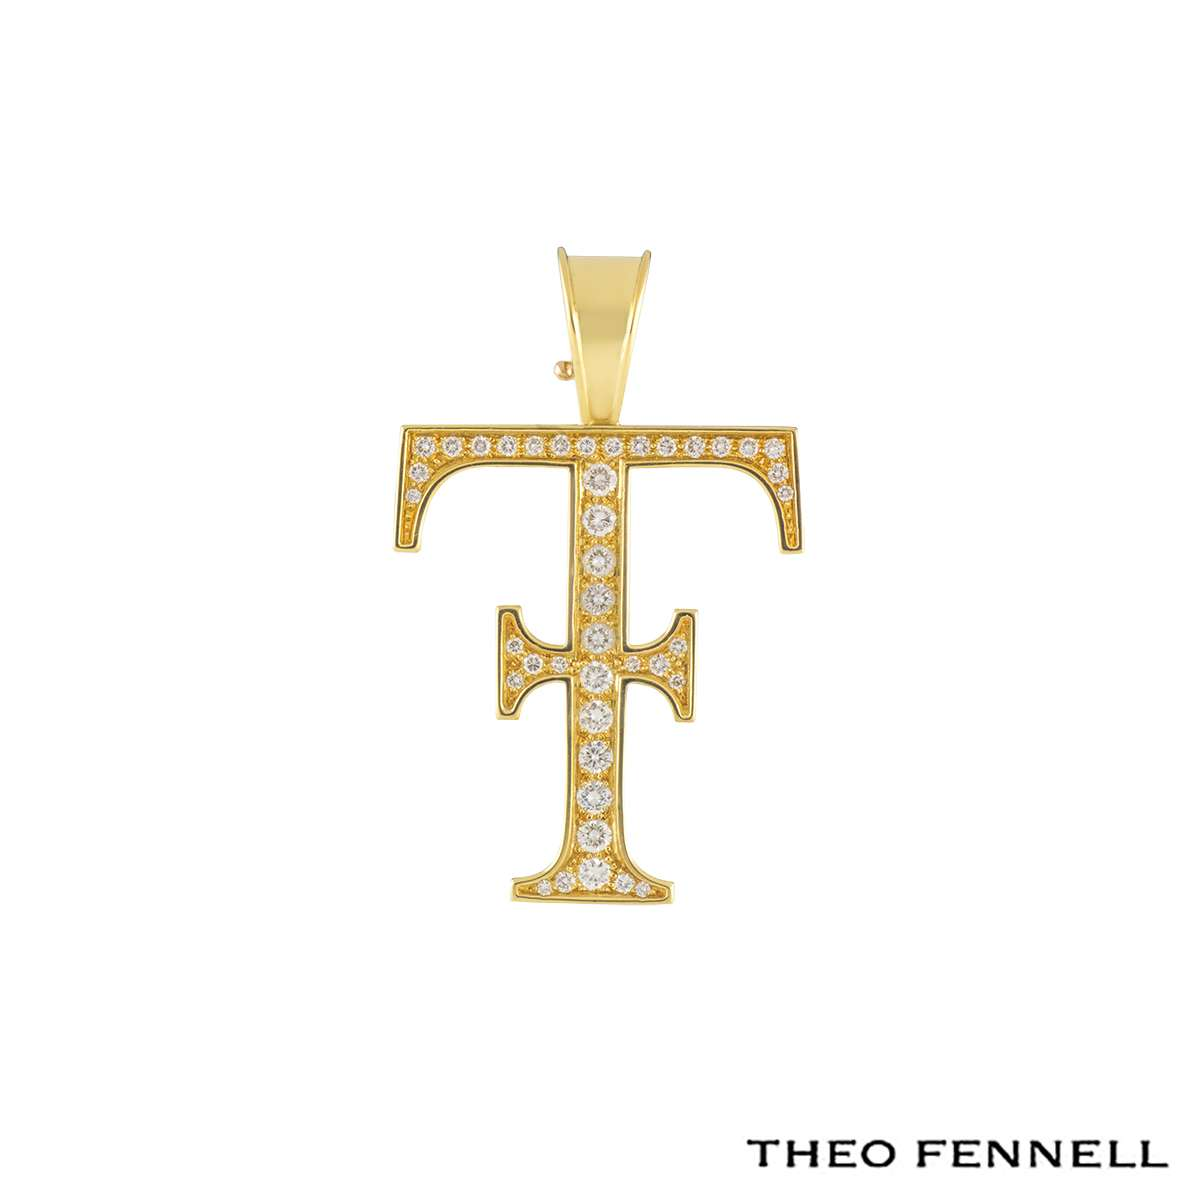 Theo Fennell Logo 18k Yellow Gold Diamond Pendant 1.09ct